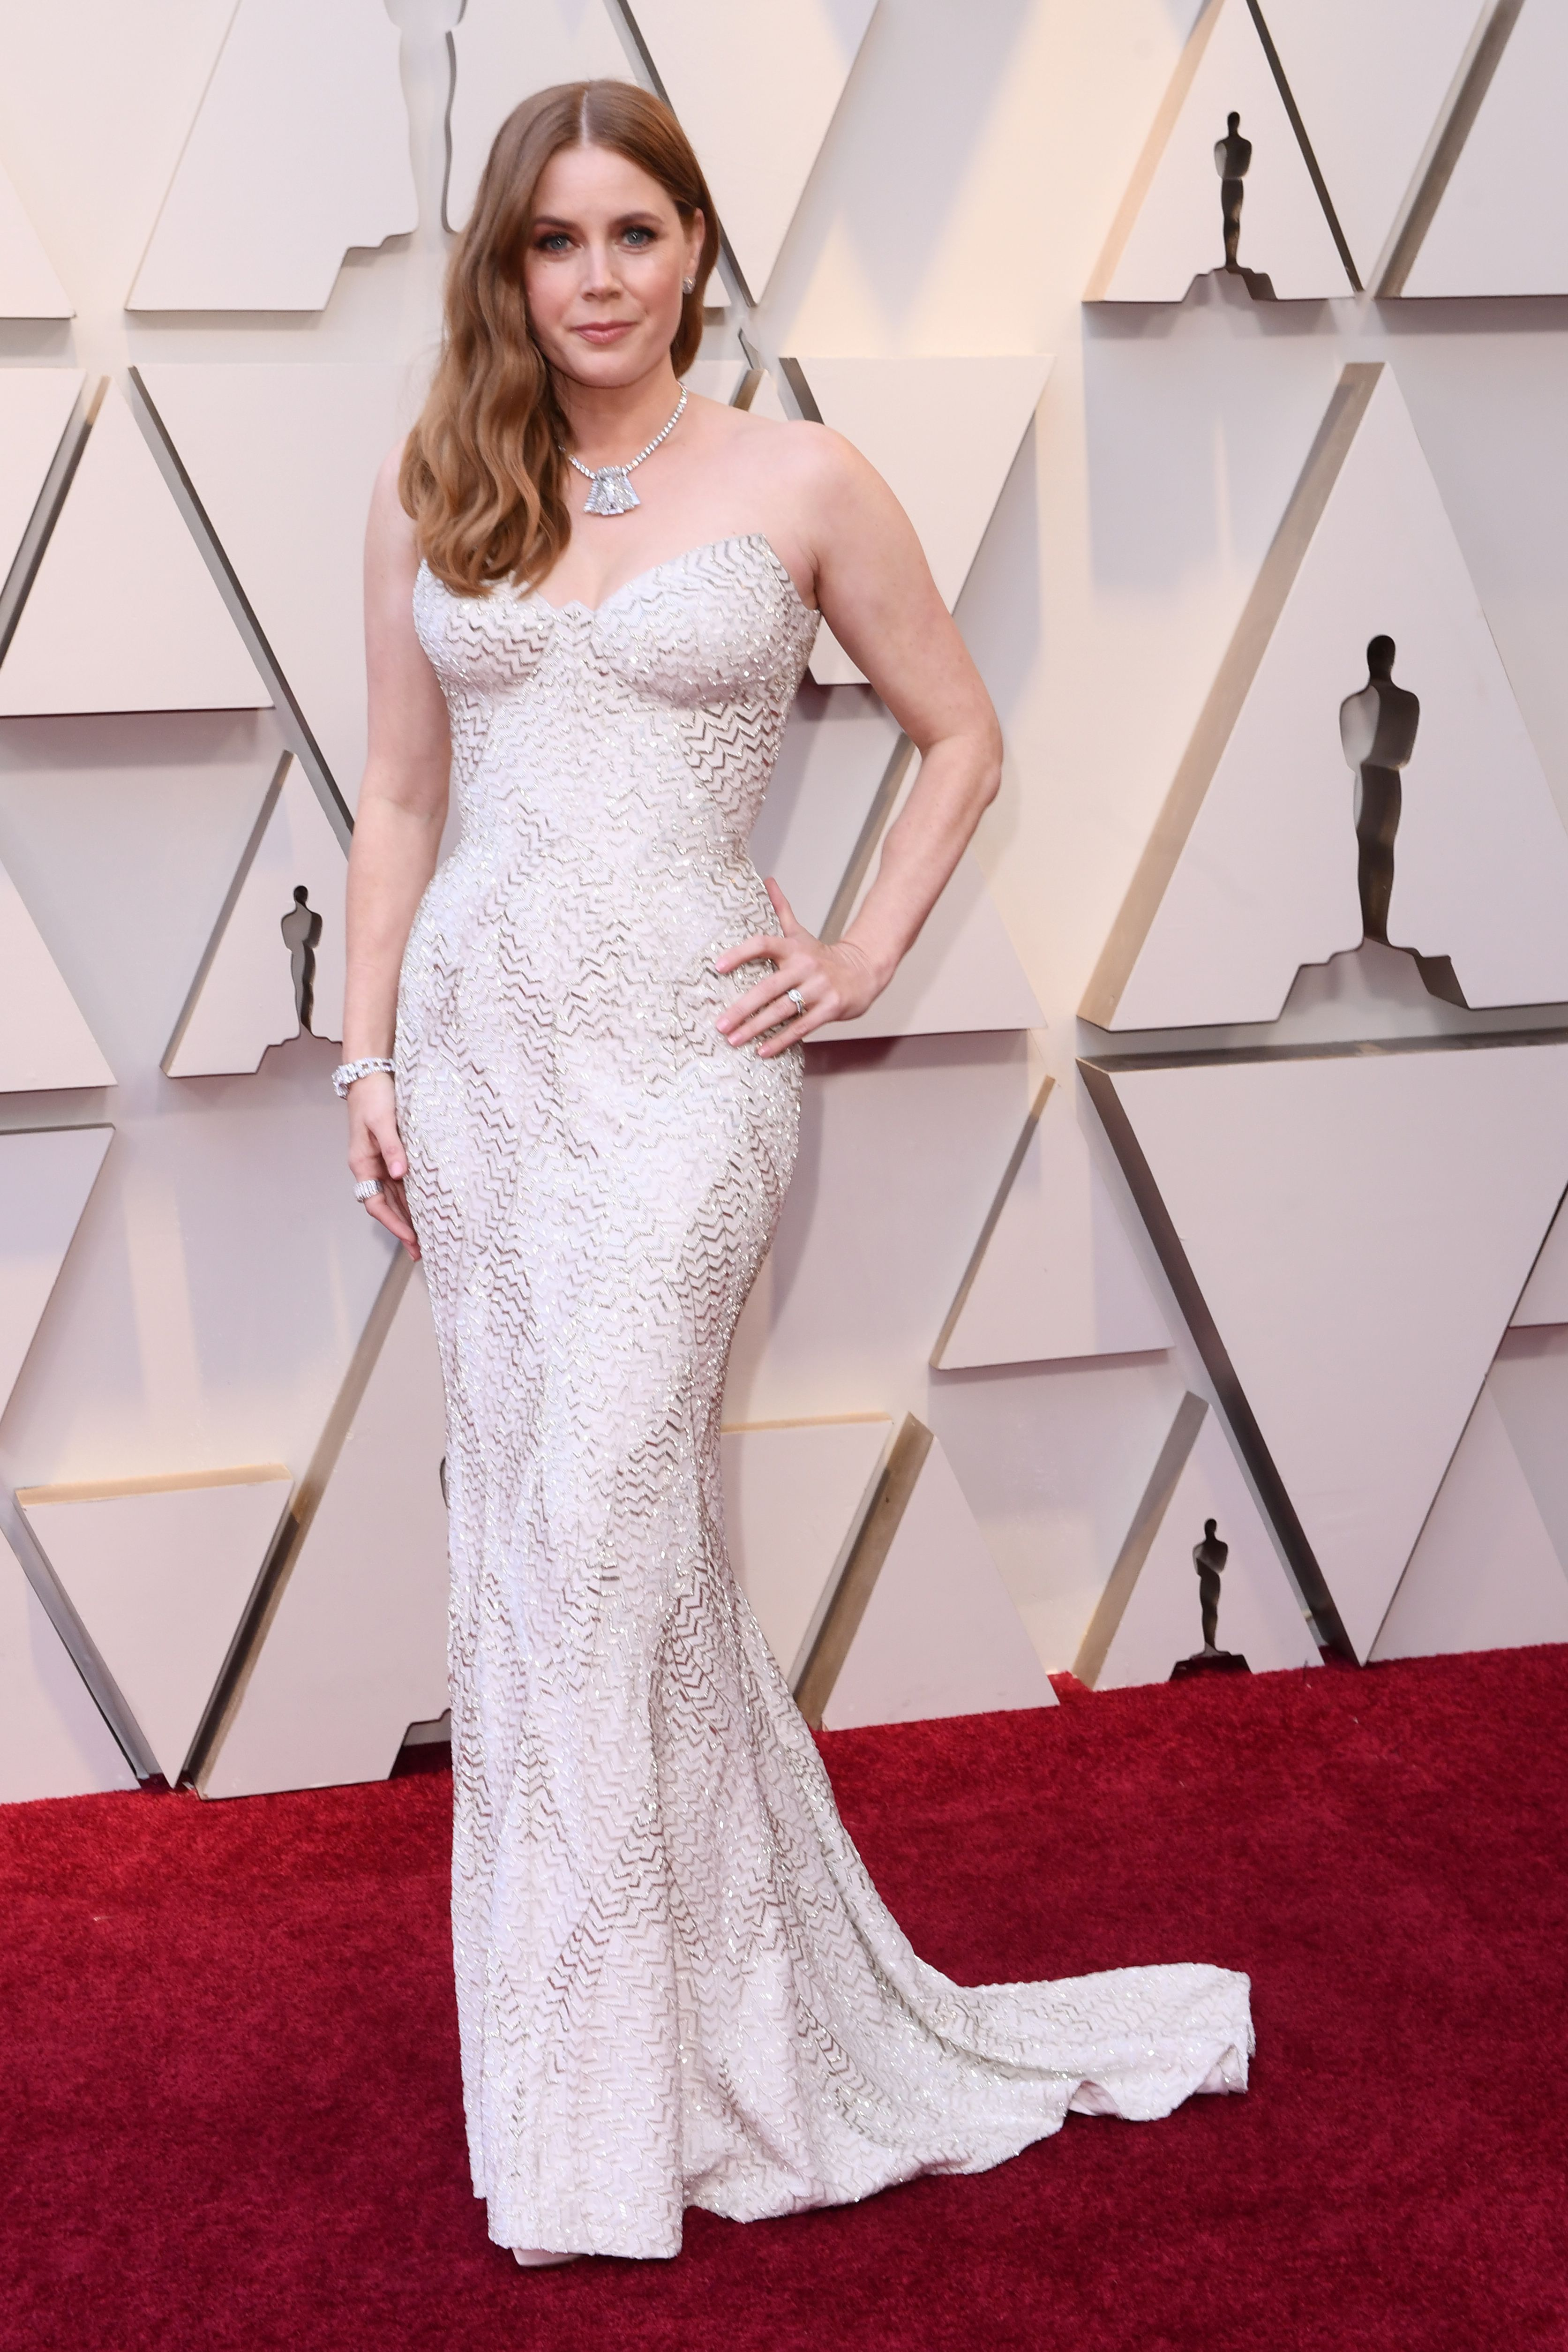 Mandatory Credit: Photo by David Fisher/REX/Shutterstock (10112734fn) Amy Adams 91st Annual Academy Awards, Arrivals, Los Angeles, USA - 24 Feb 2019